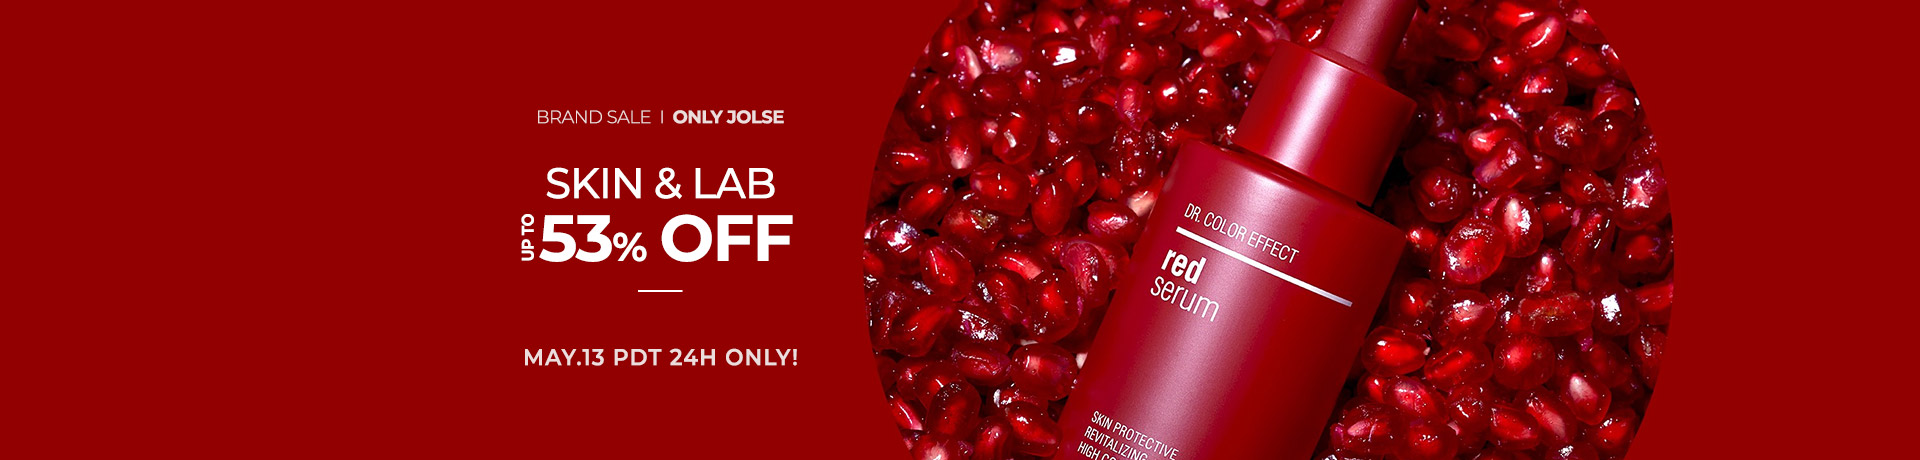 SKIN&LAB Up to 53% OFF